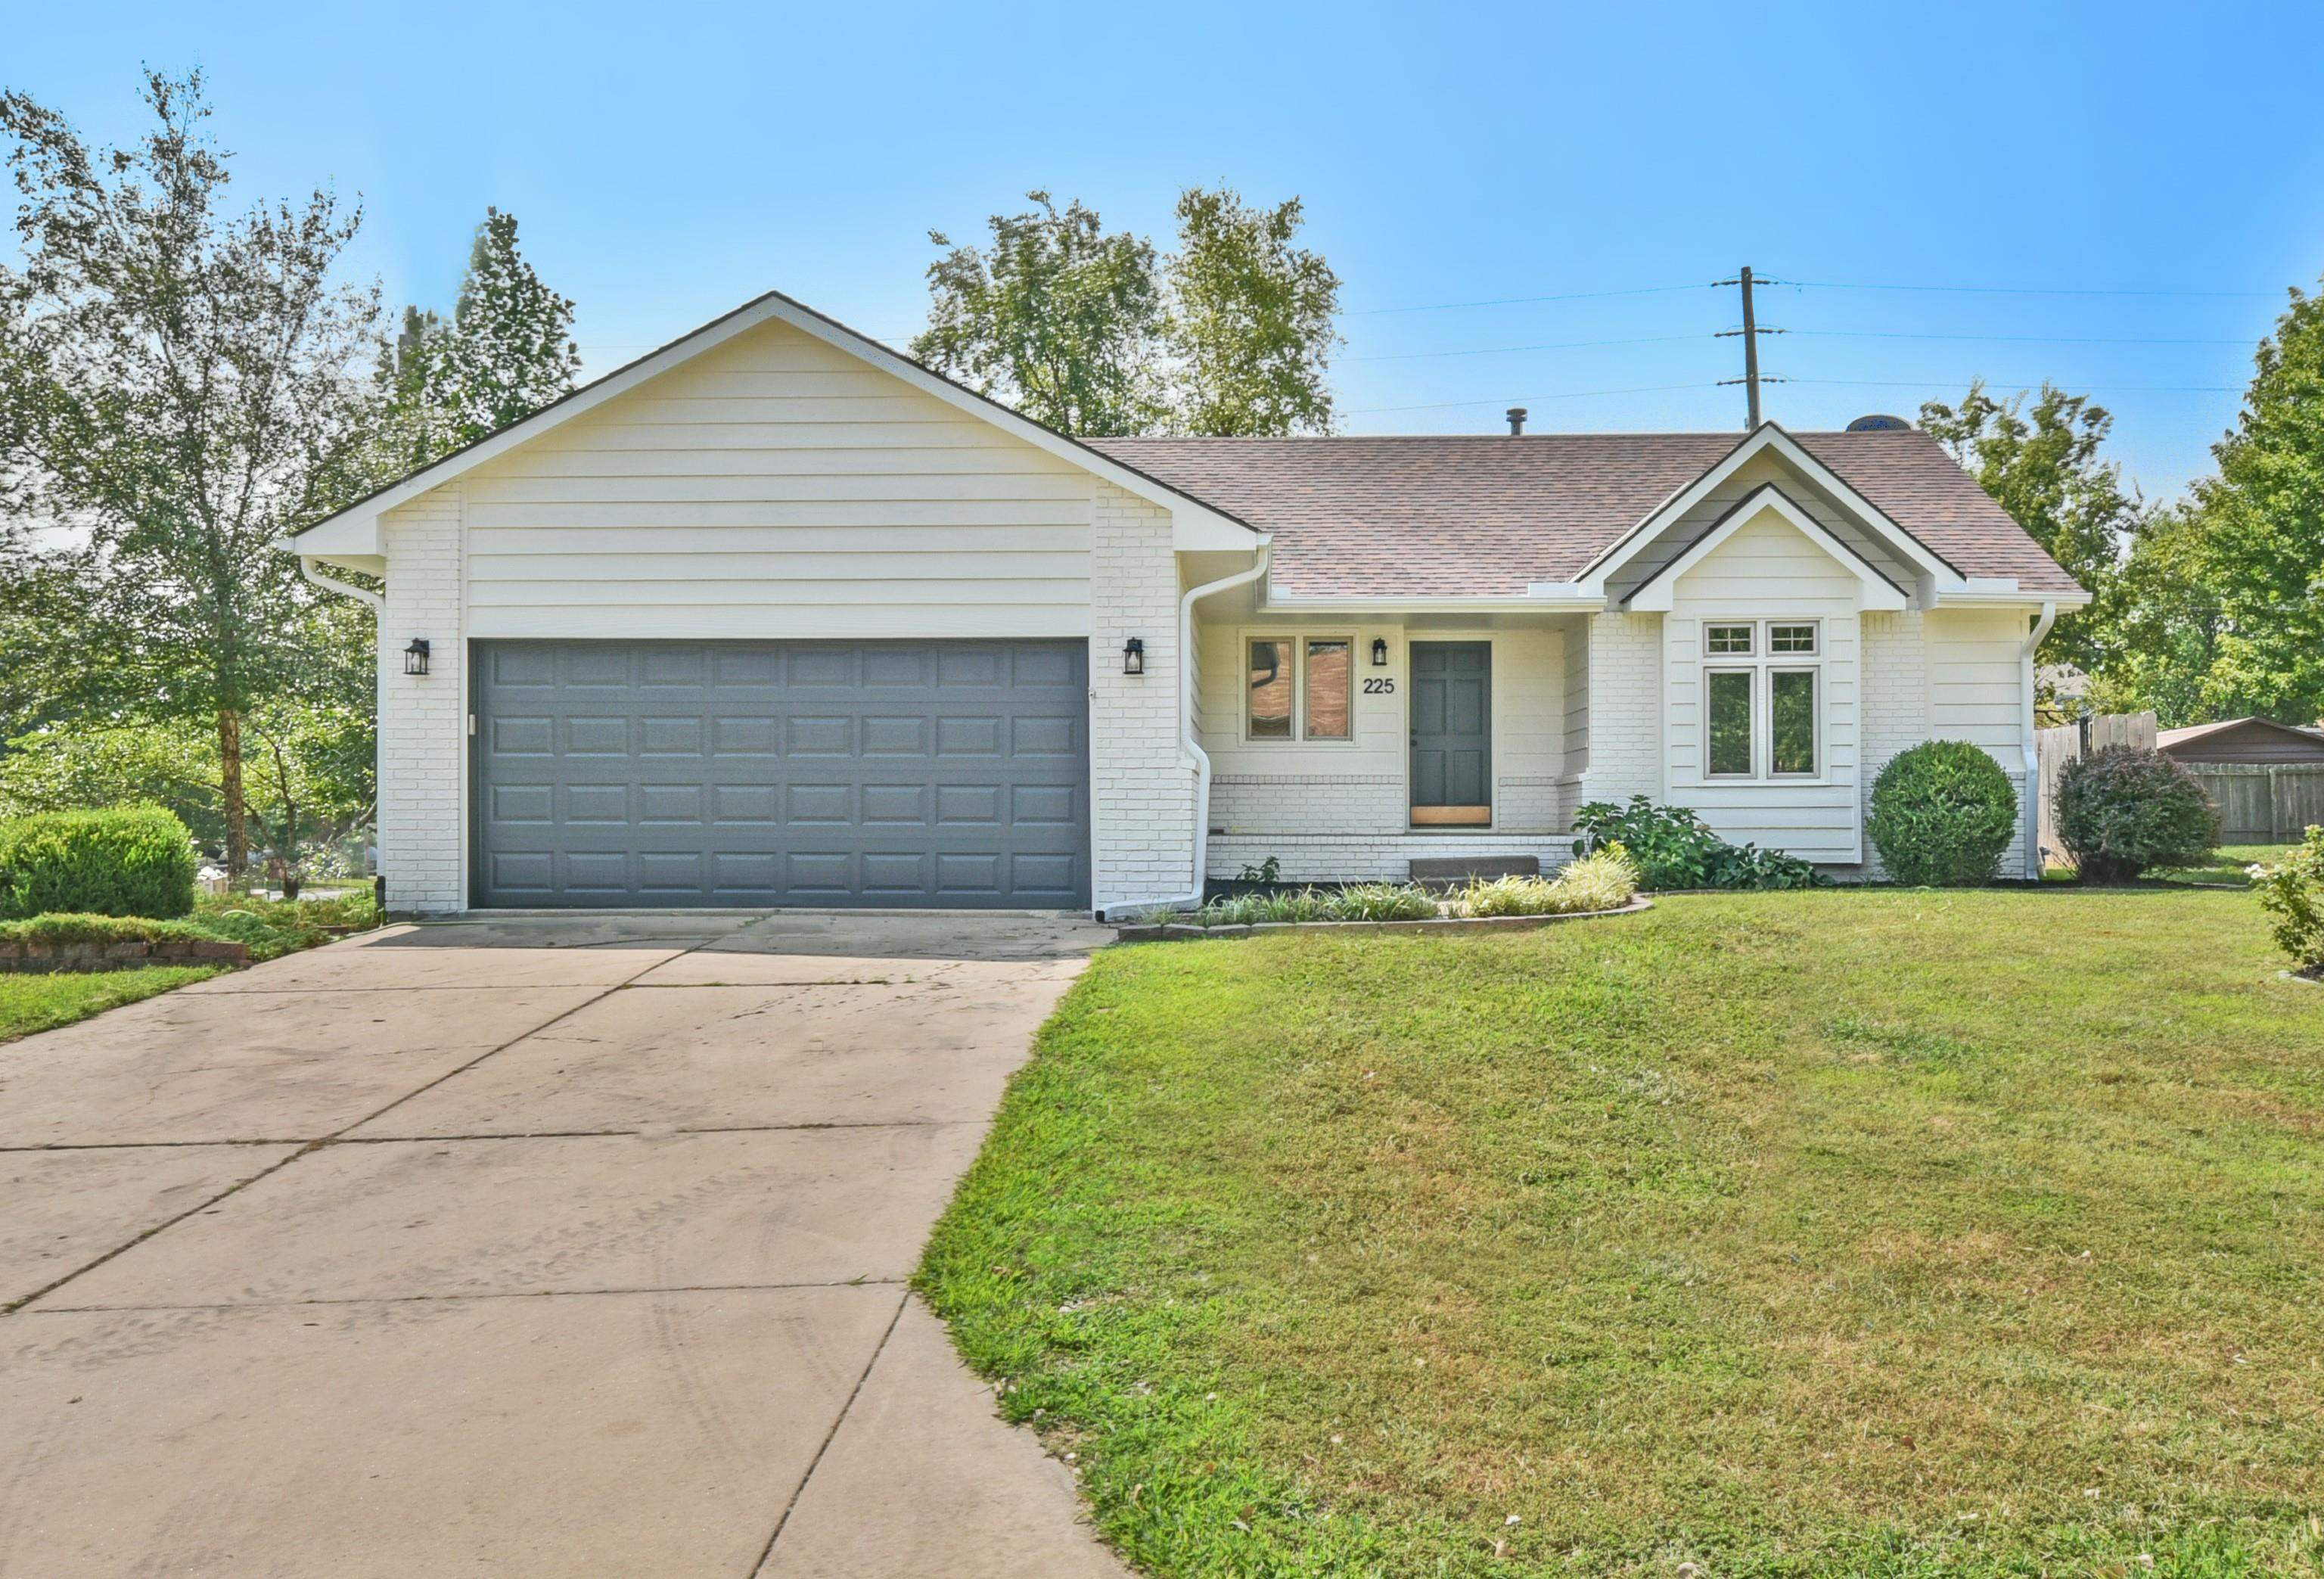 PUT THIS ONE ON YOUR LIST TO SEE! Gorgeous 3 Bedroom, 2 Bath ranch freshly remolded. Walk into the l